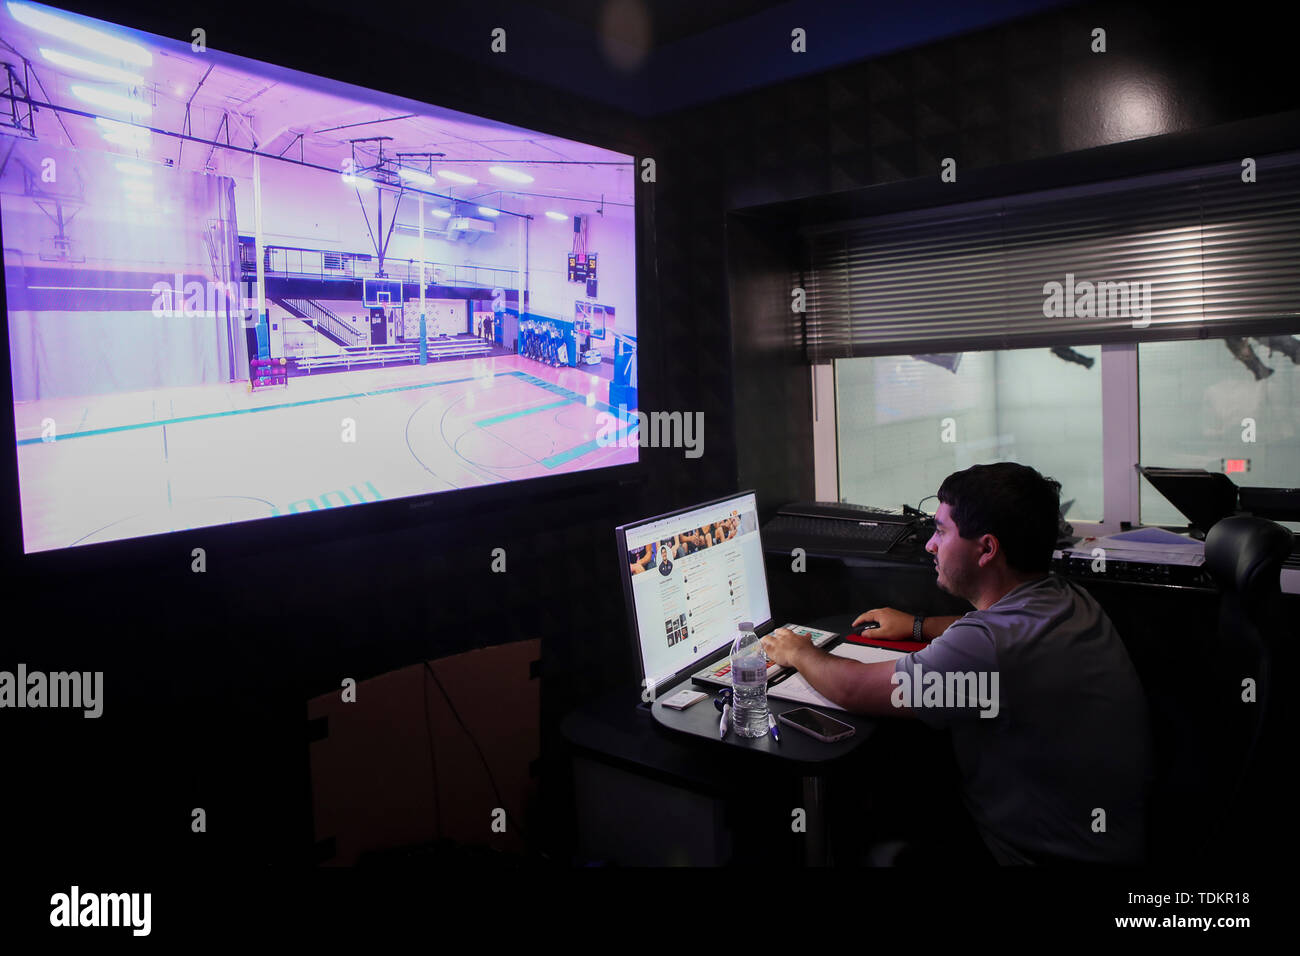 (190617) -- DAYTONA BEACH (U.S.), June 17, 2019 (Xinhua) -- A staff member monitors the live broadcast of a training court at DME Sports Academy (DMESA), in Daytona Beach of Florida, the United States, June 6, 2019. Sports skill training and culture exchange opportunities offered by DME Sports Academy for talented students and young individuals from around the world have advanced people-to-people connection between China and the United States. Established three years ago, DMESA offers top-level athletic development training and life skills mentoring to both U.S. domestic and overseas young tal - Stock Image